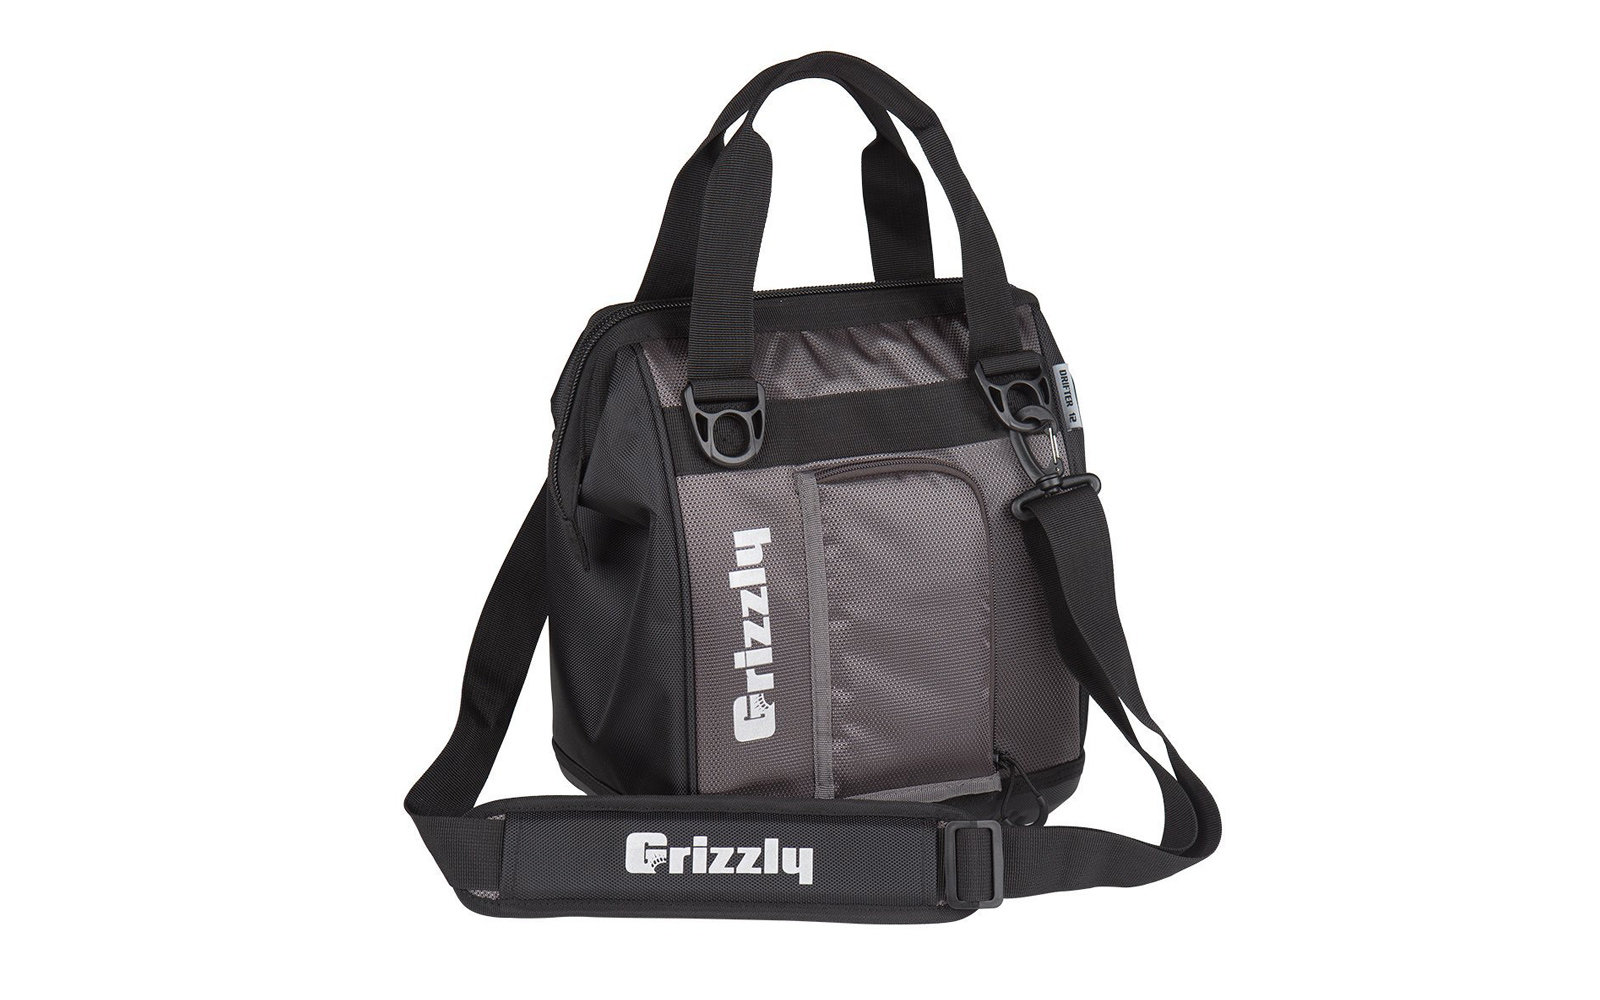 Grizzly Coolers Drifter